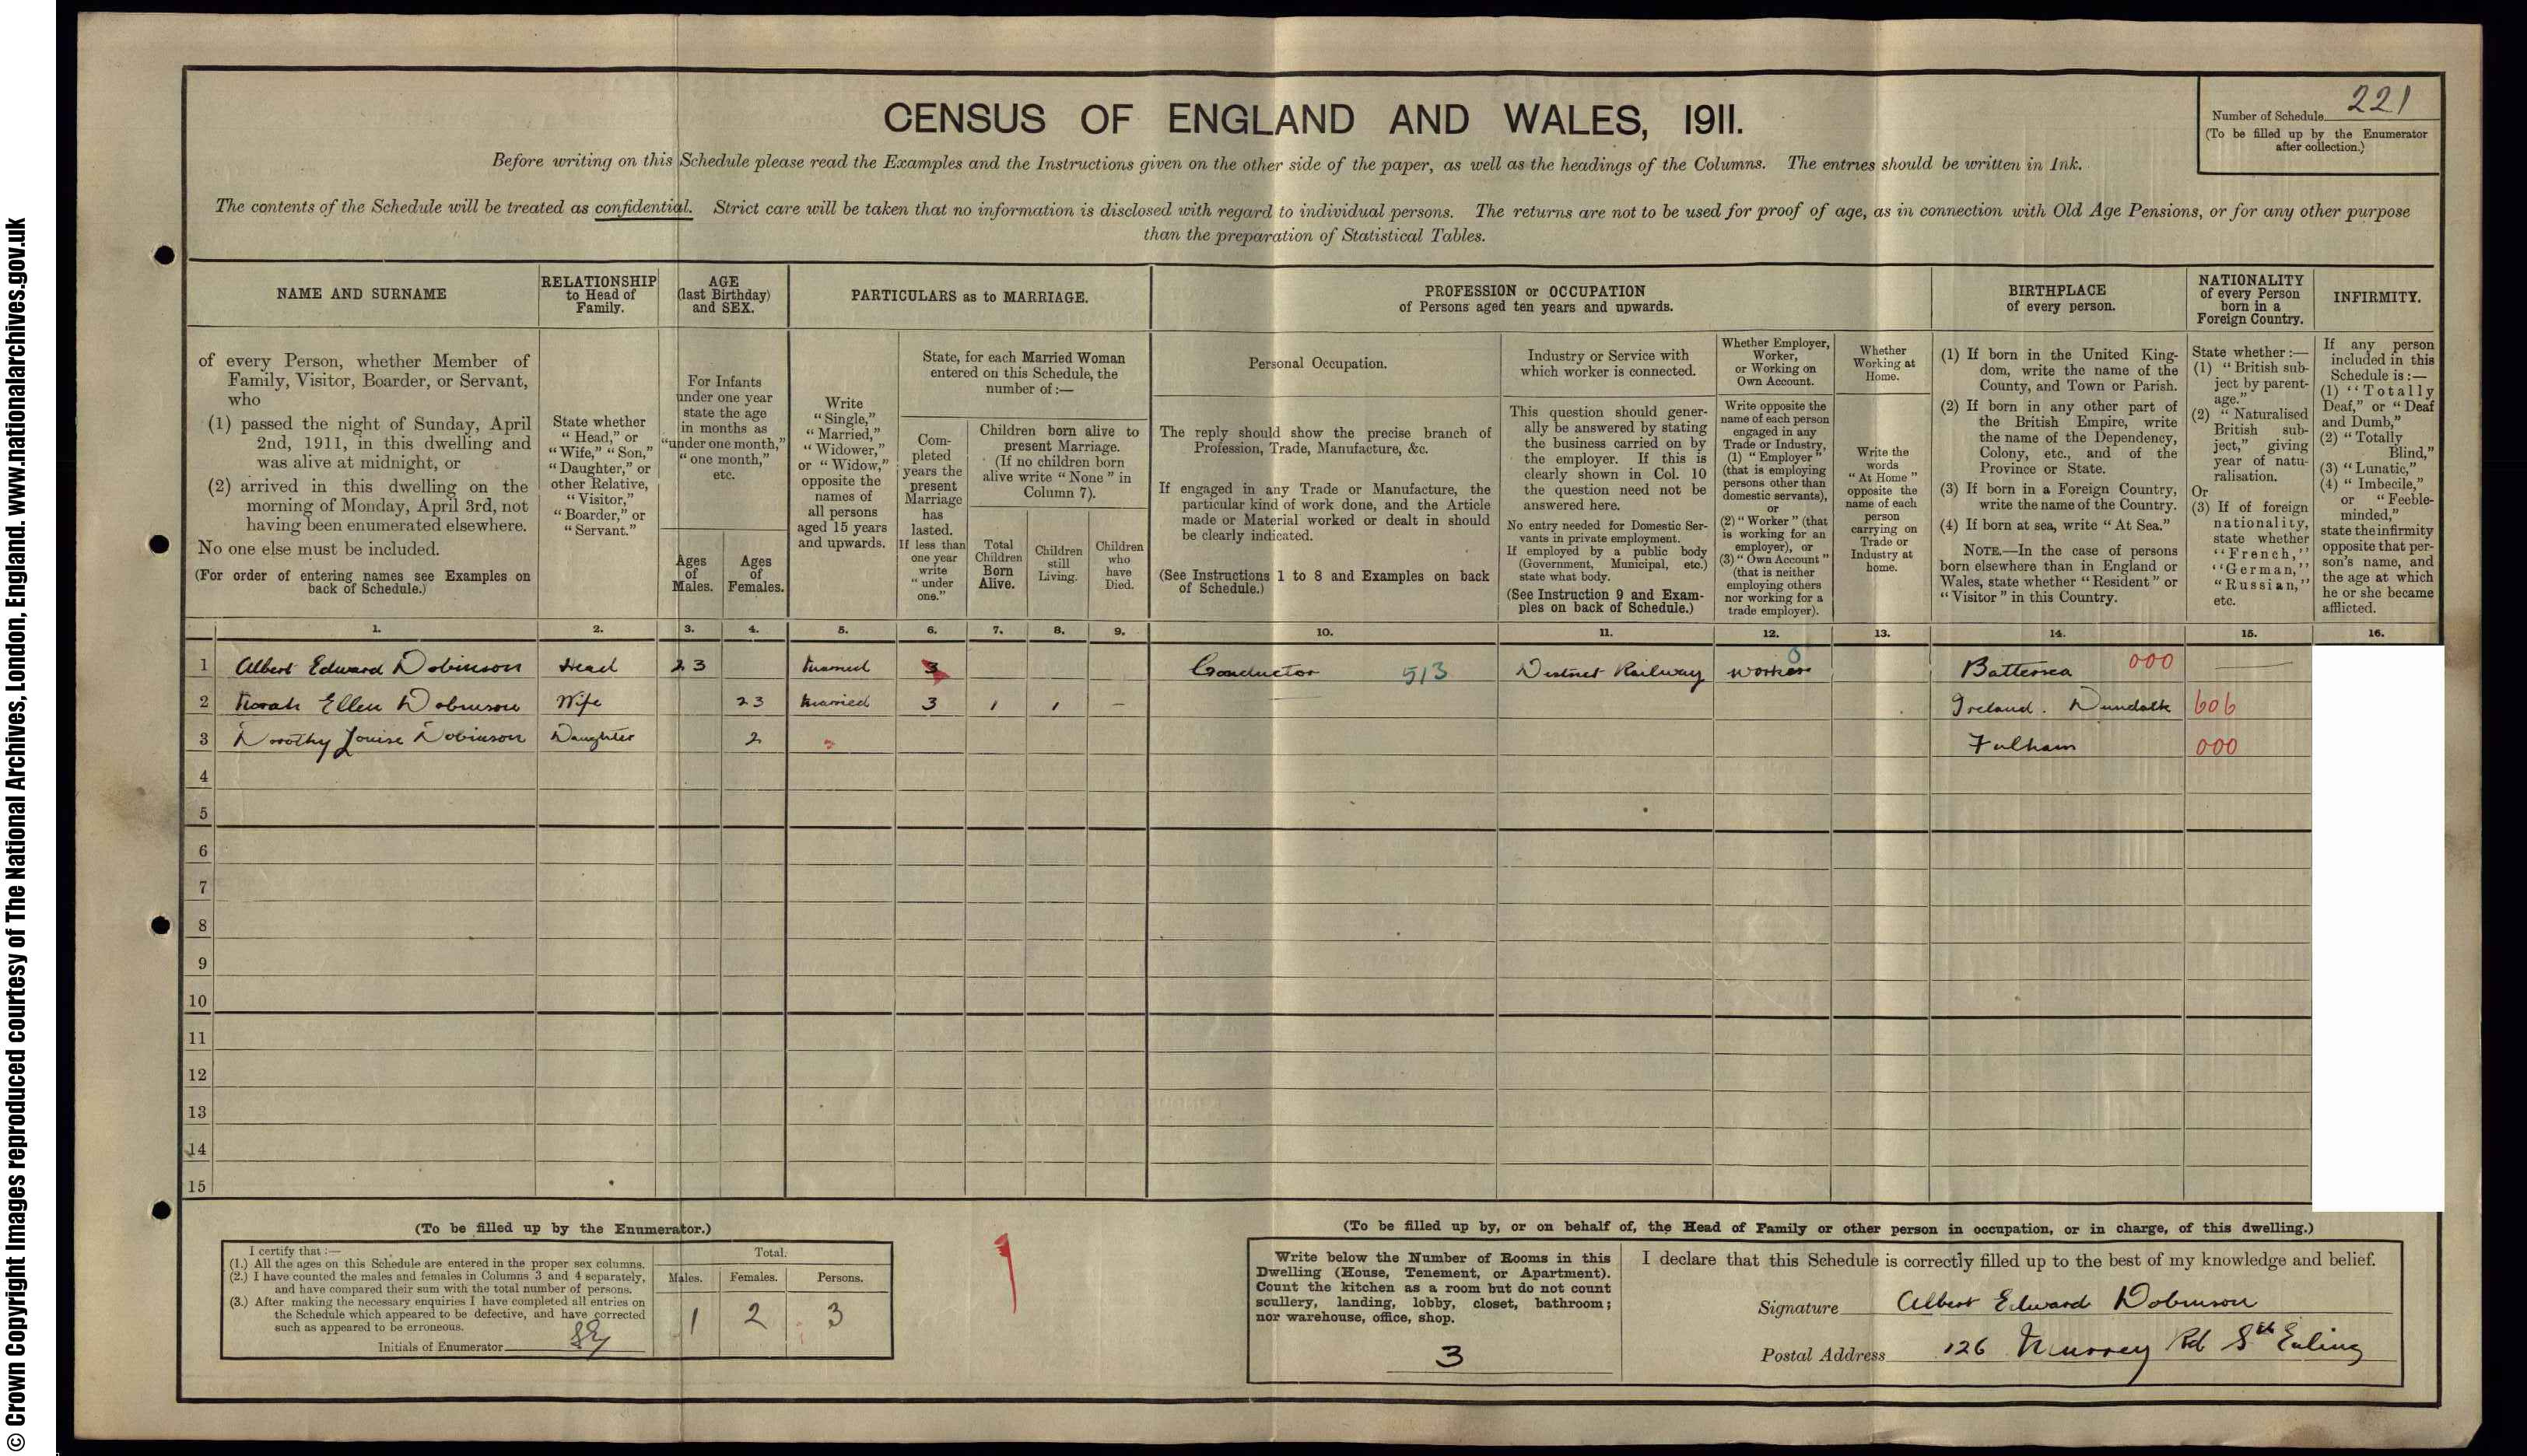 1911 England Census Record for Albert Edward Dobinson (b1888)